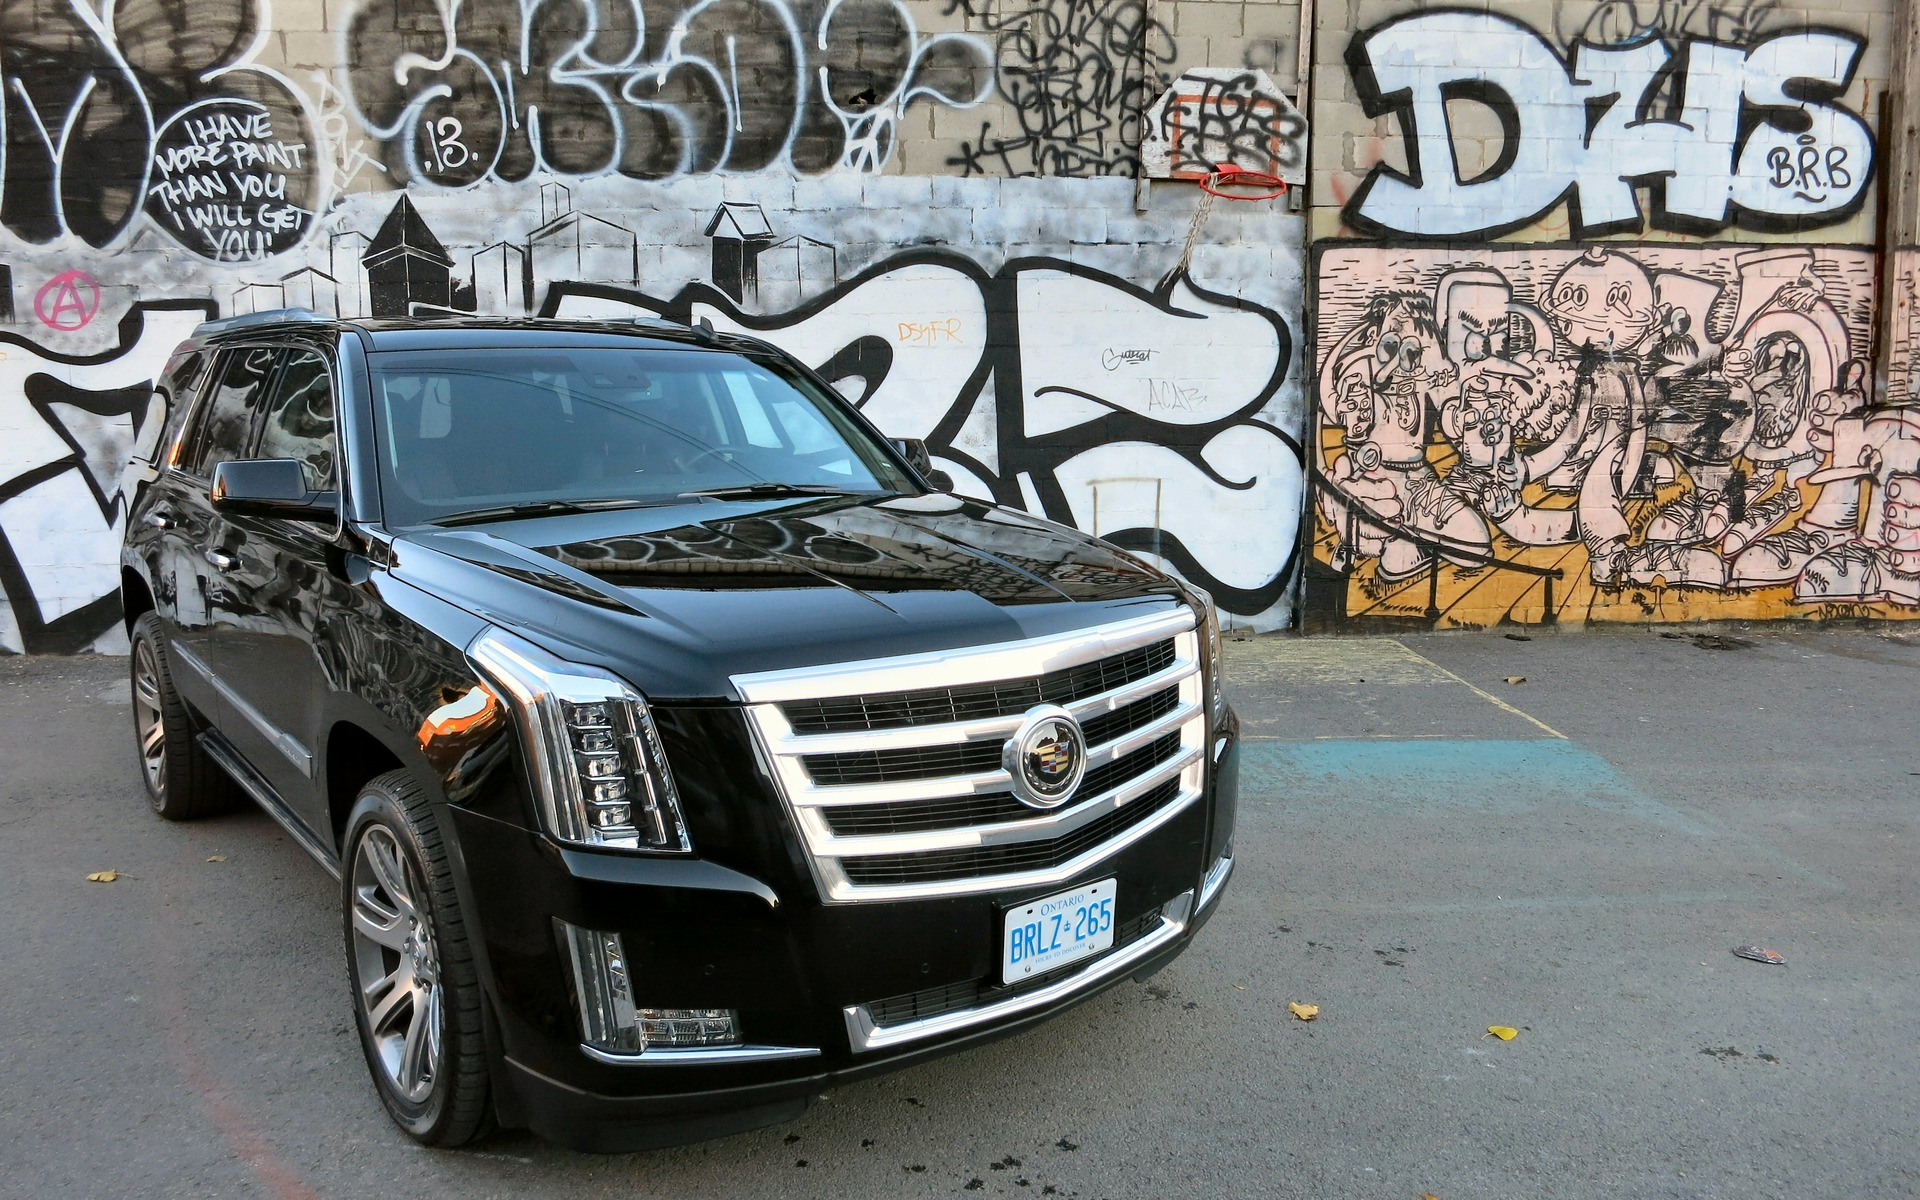 photos camera system escalade cadillac get automatic to lifted speed news degree